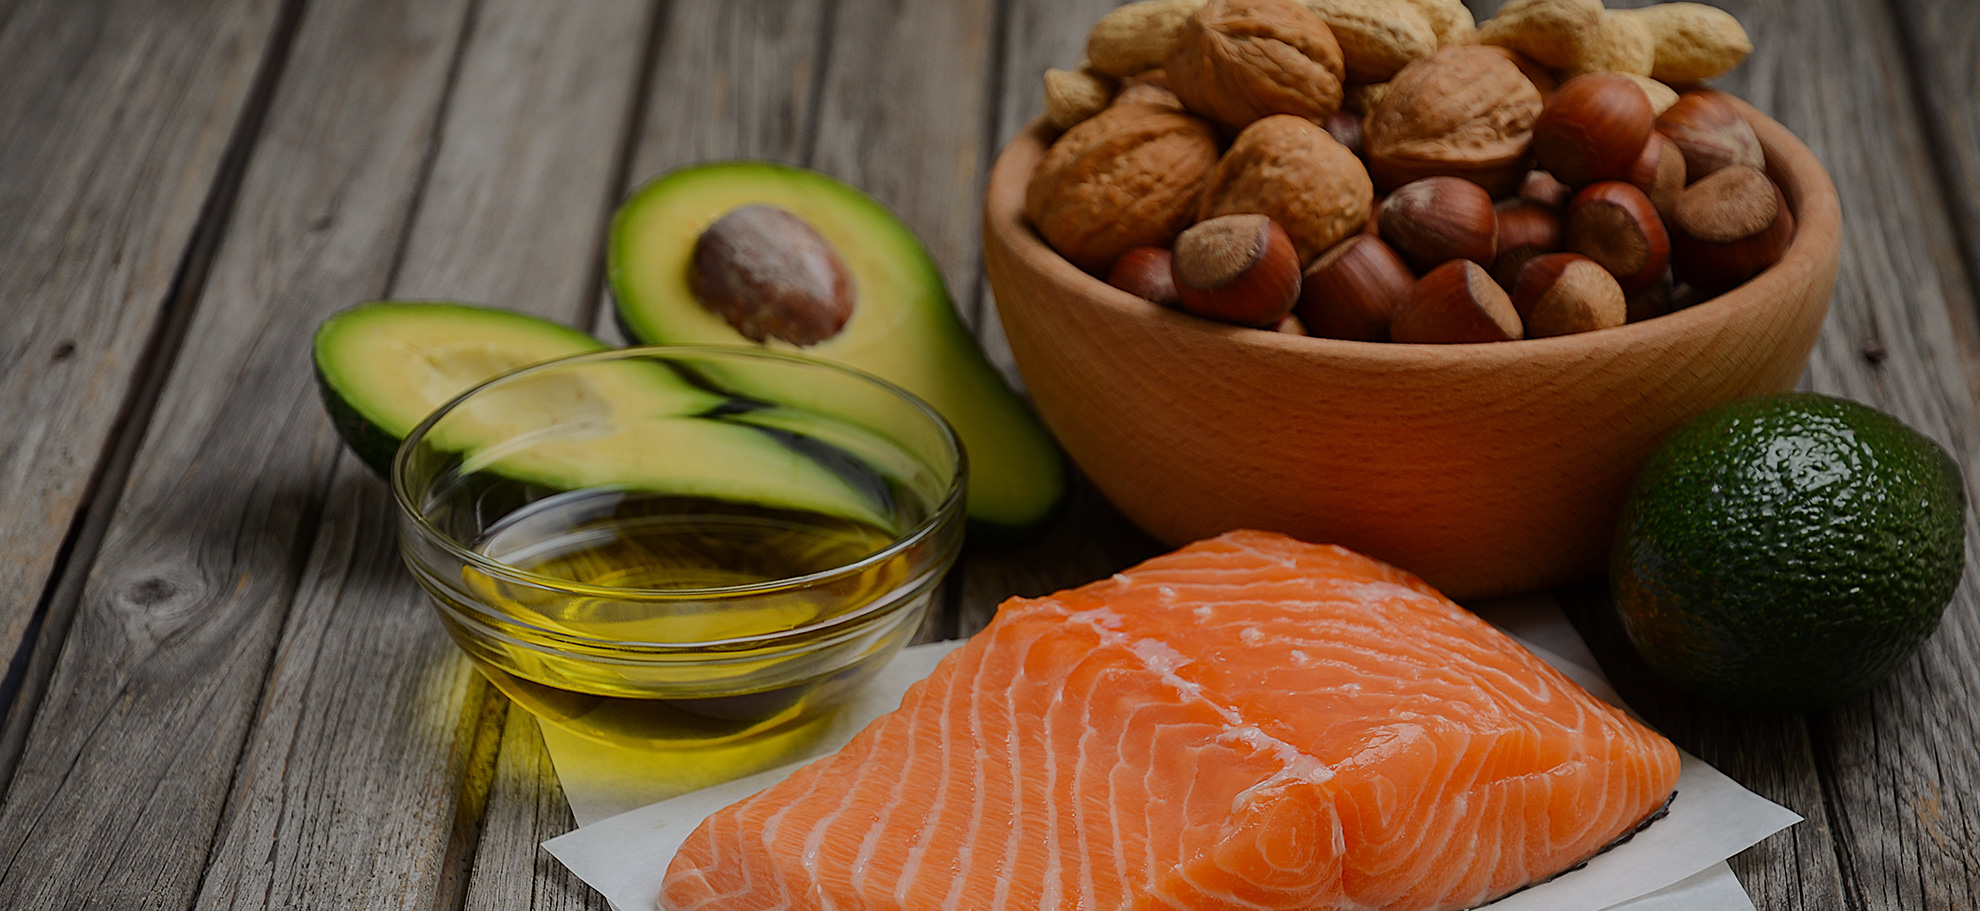 Ketogenic Diet for Performance and Wellness